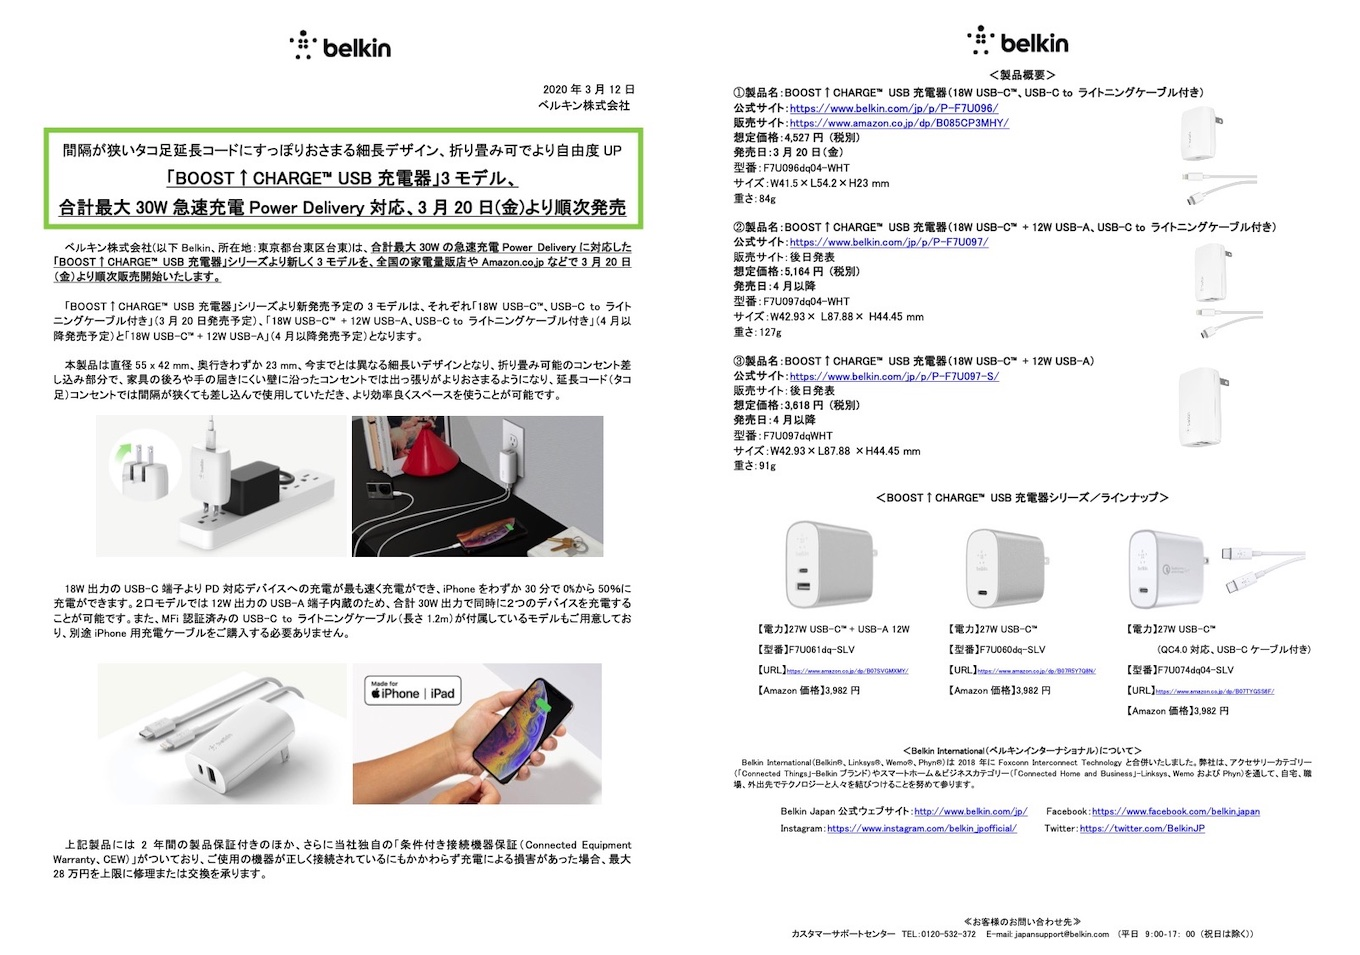 BelkinがBOOST↑CHARGE™ USB充電器発売